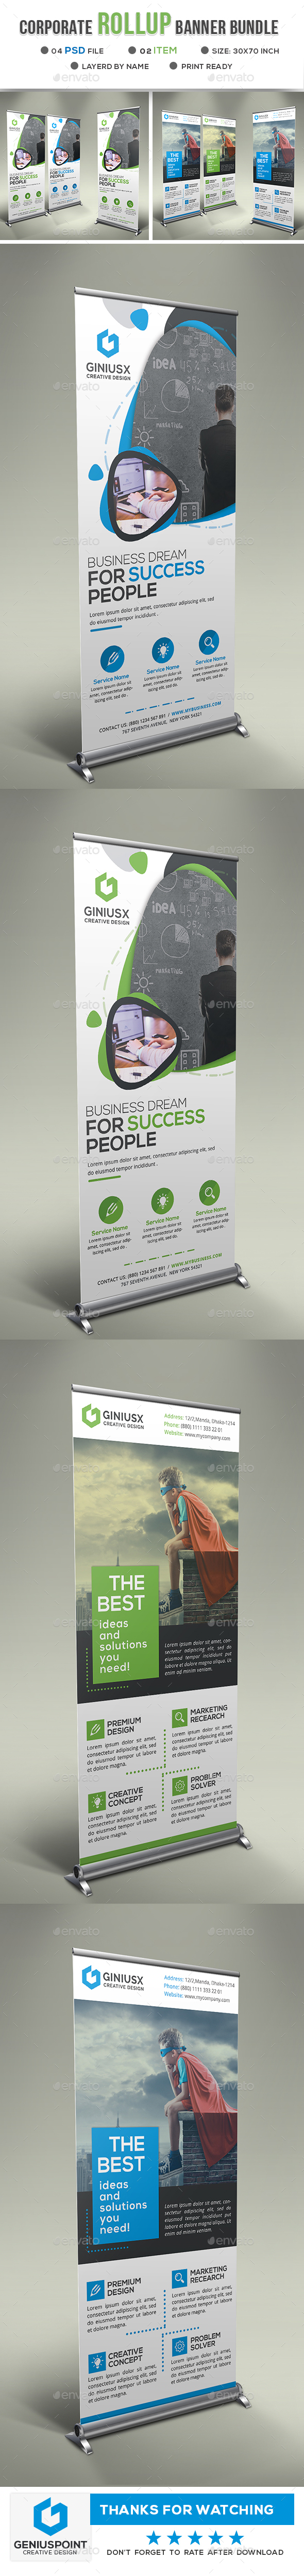 GraphicRiver Corporate Roll-Up Banner Bundle 20841550